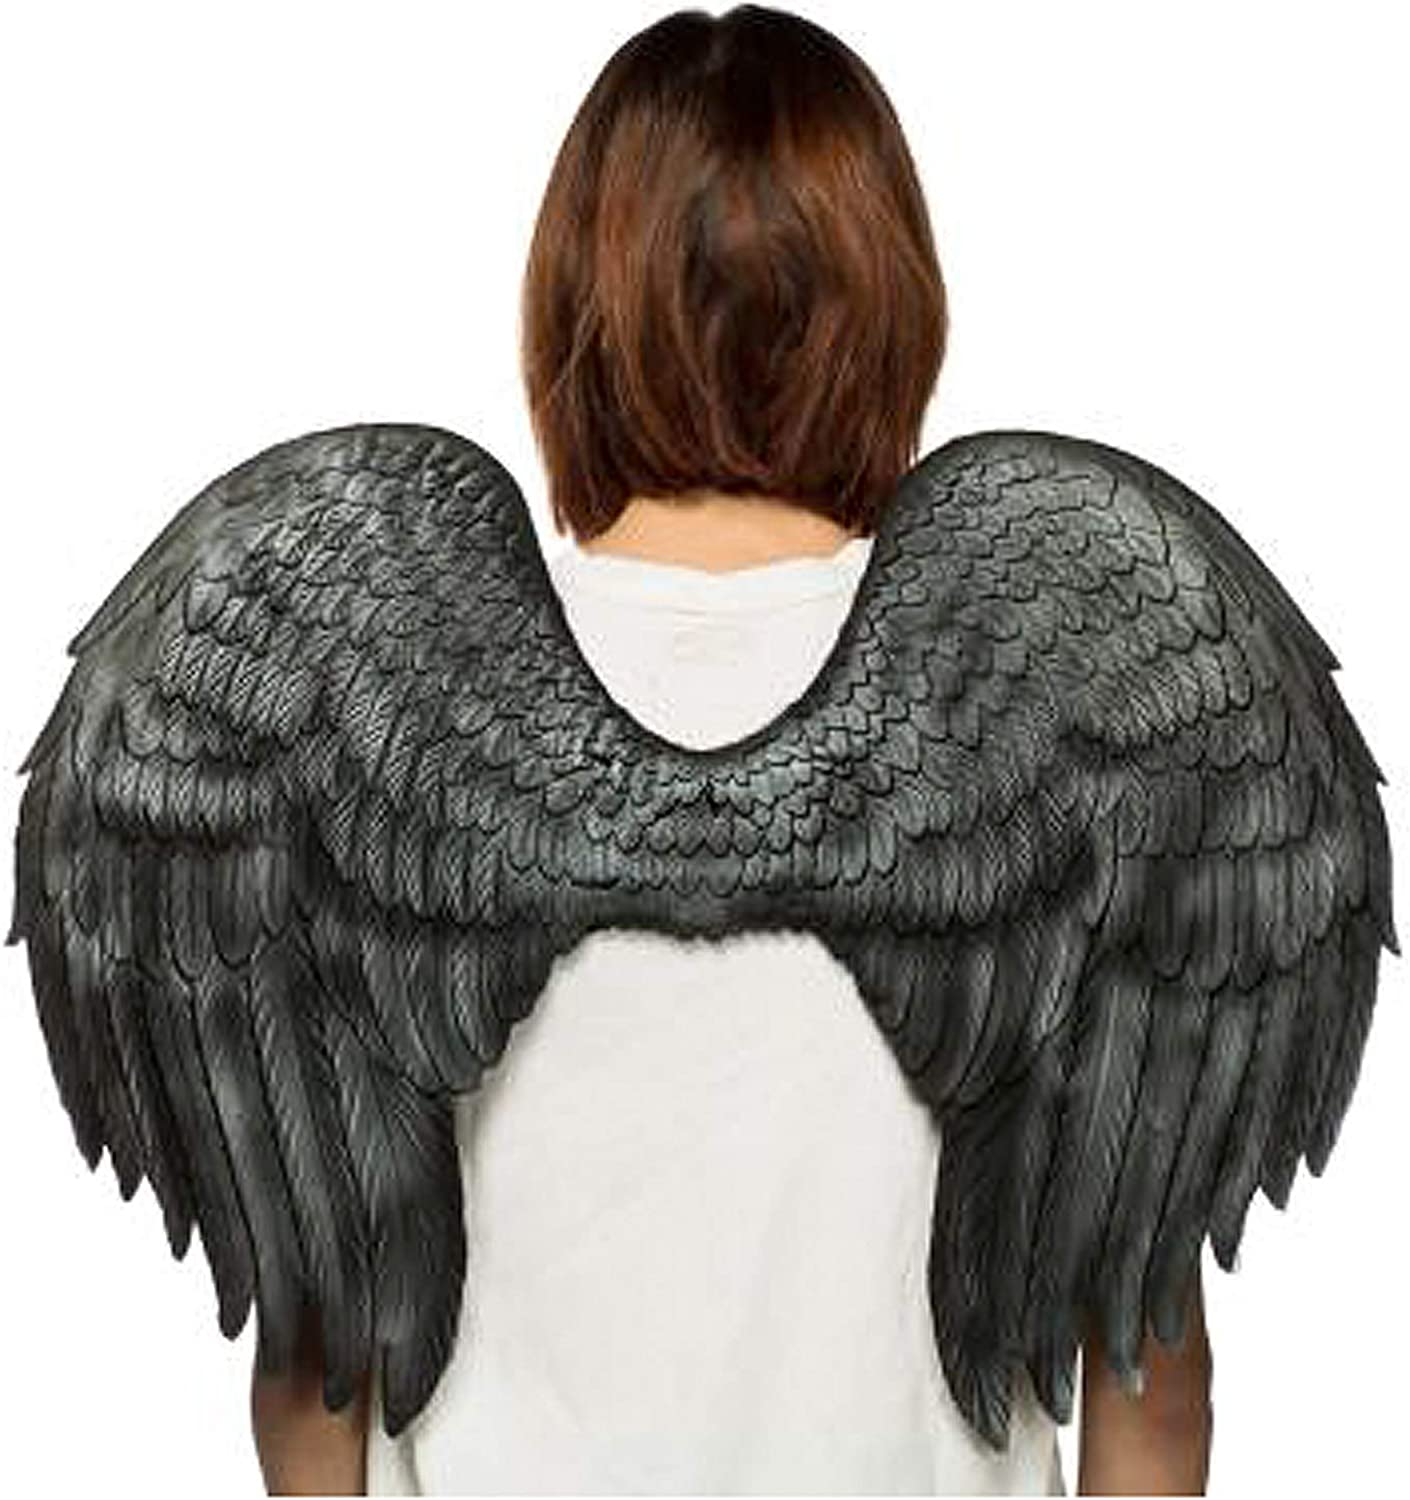 HMS Unisex-Adult's Supersoft Angel Wings-BK, Black, One Size